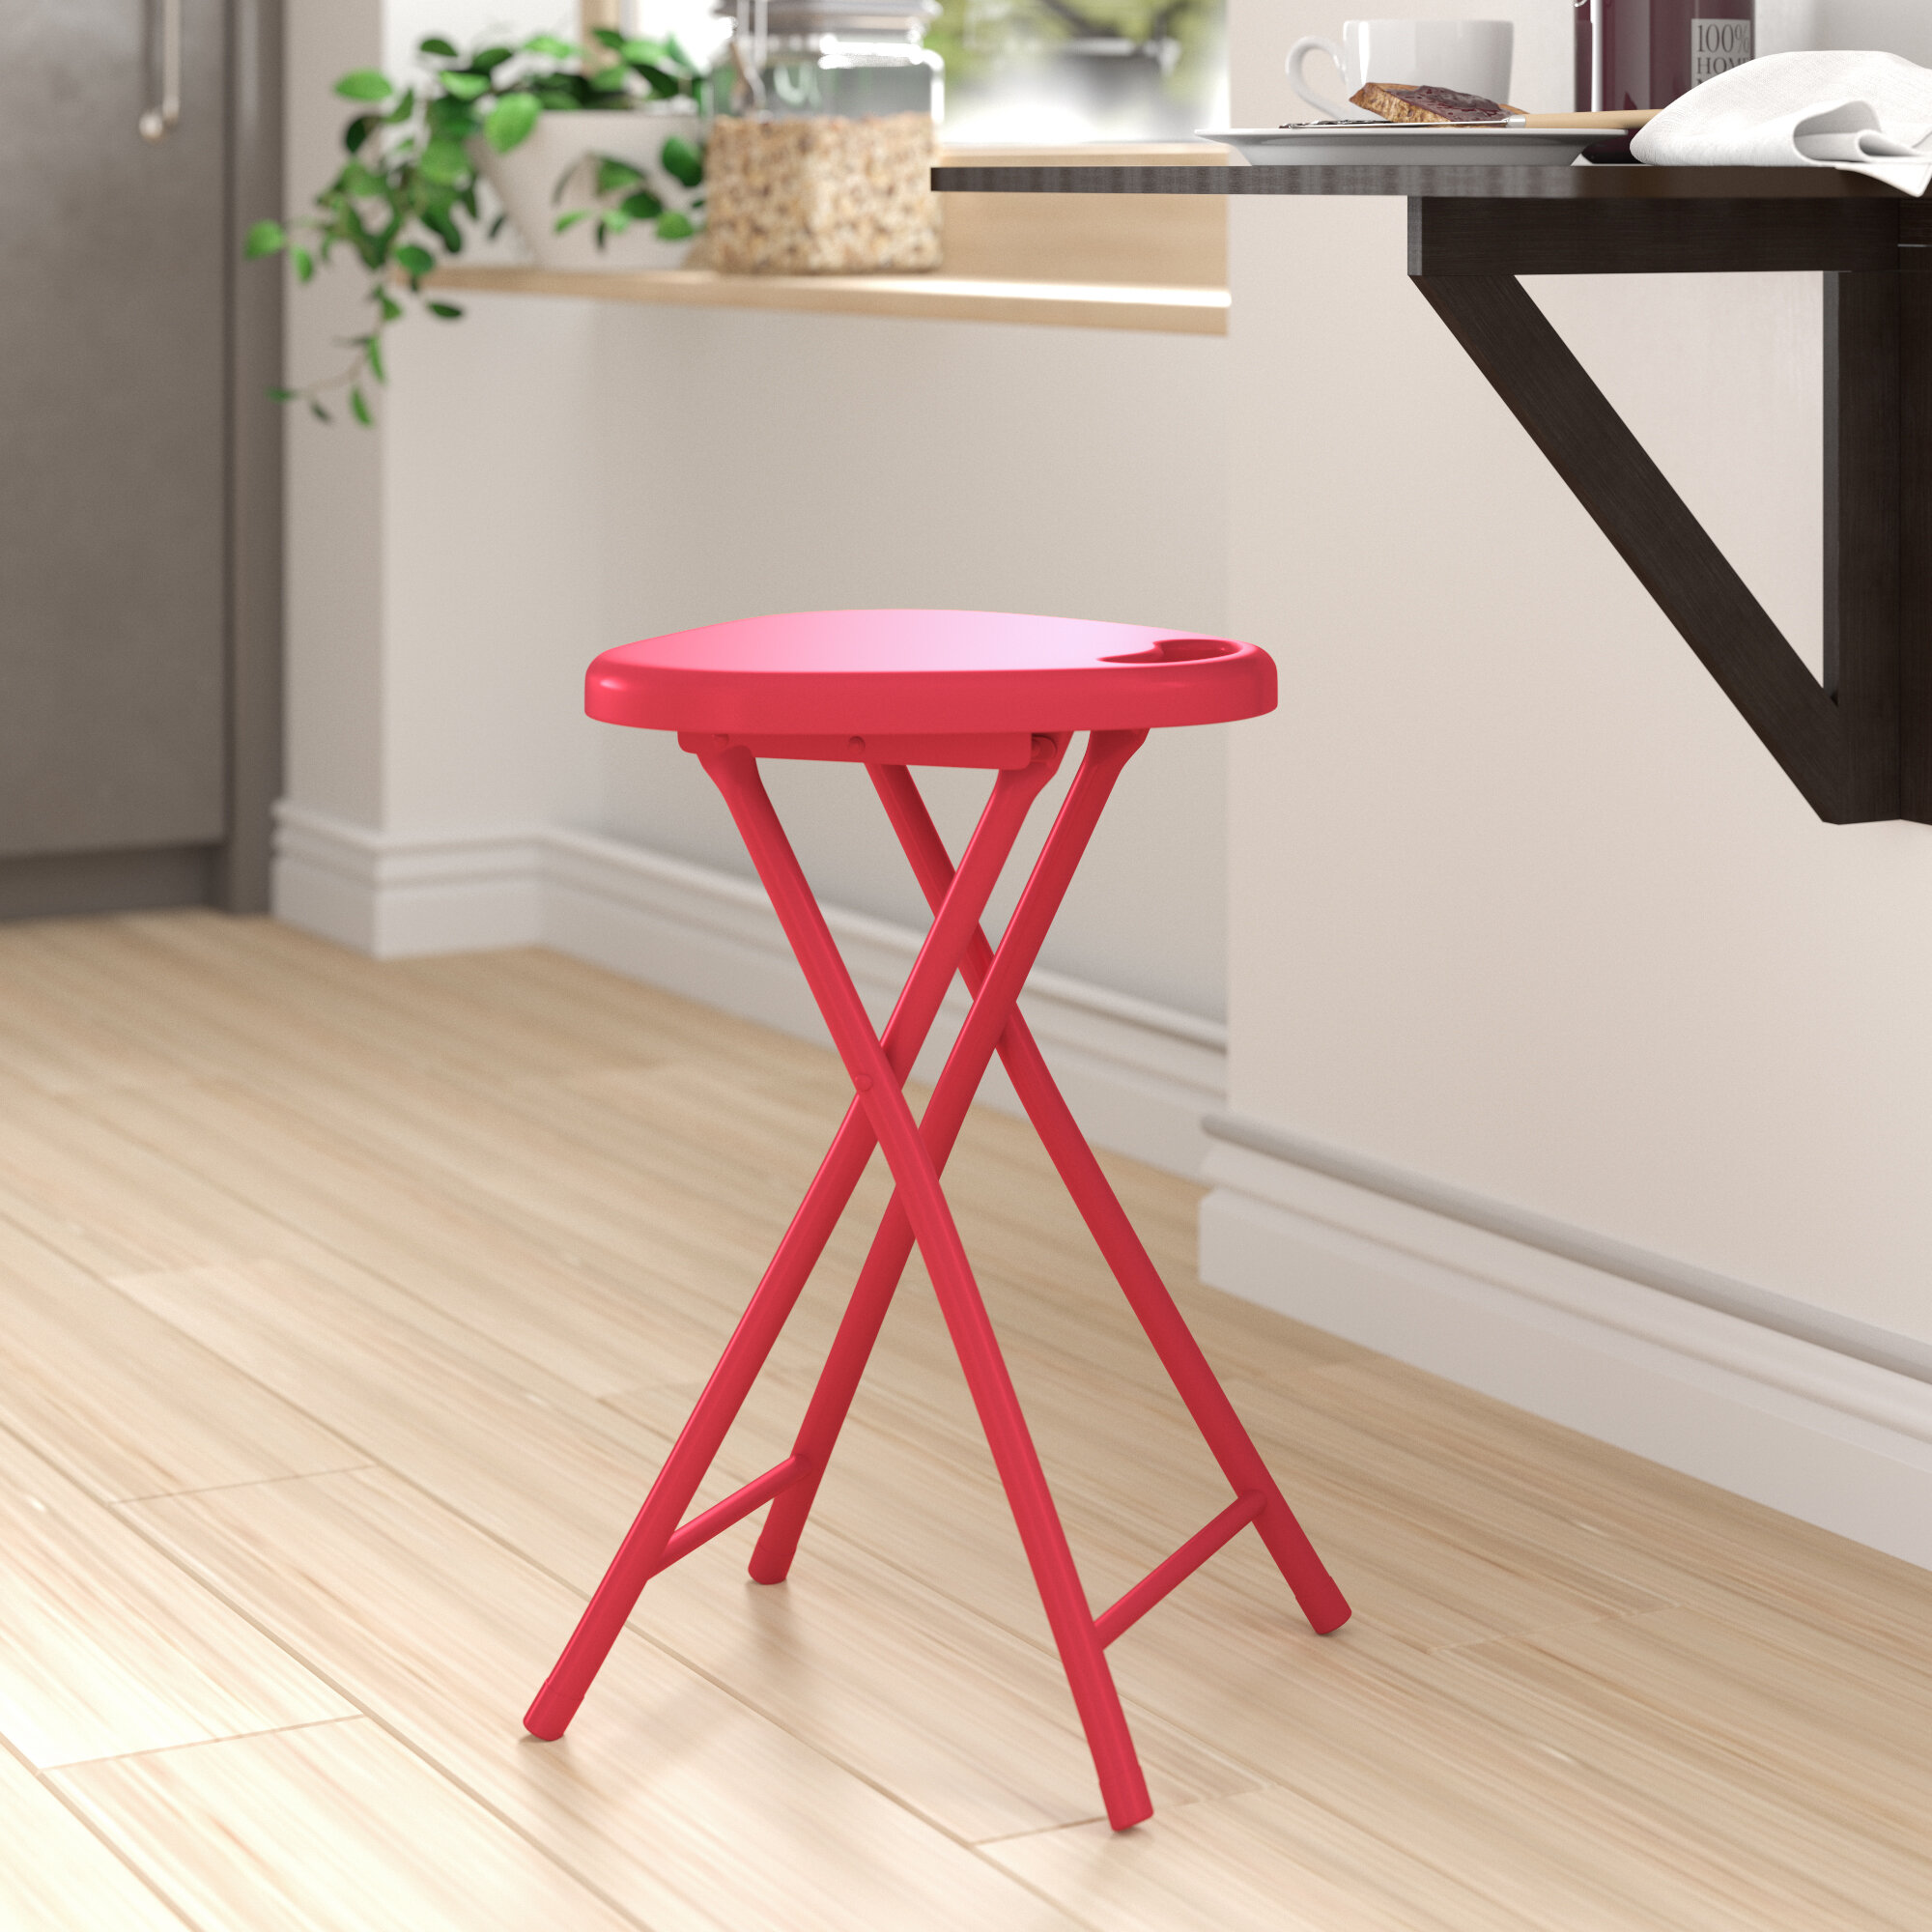 Zipcode Design Silvia Folding Stool With Handle Reviews Wayfair